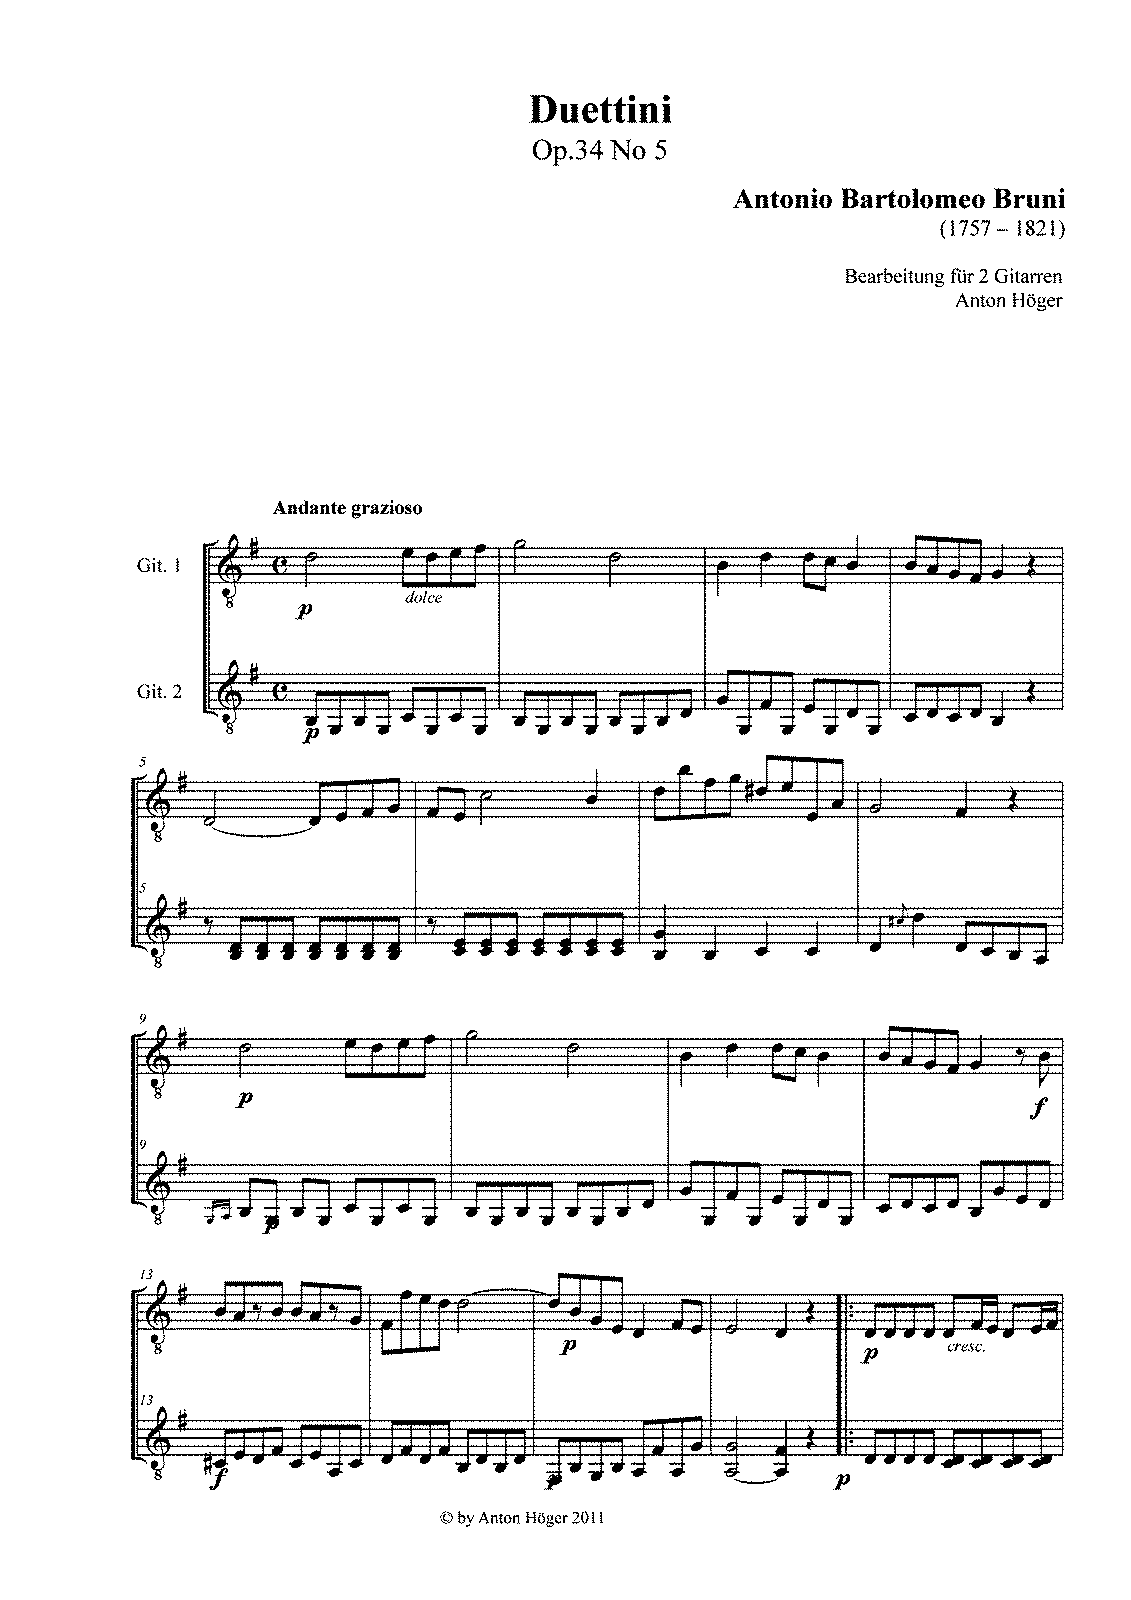 PMLP122884-Bruni, A.B. - Duettini Op.34 No5.pdf